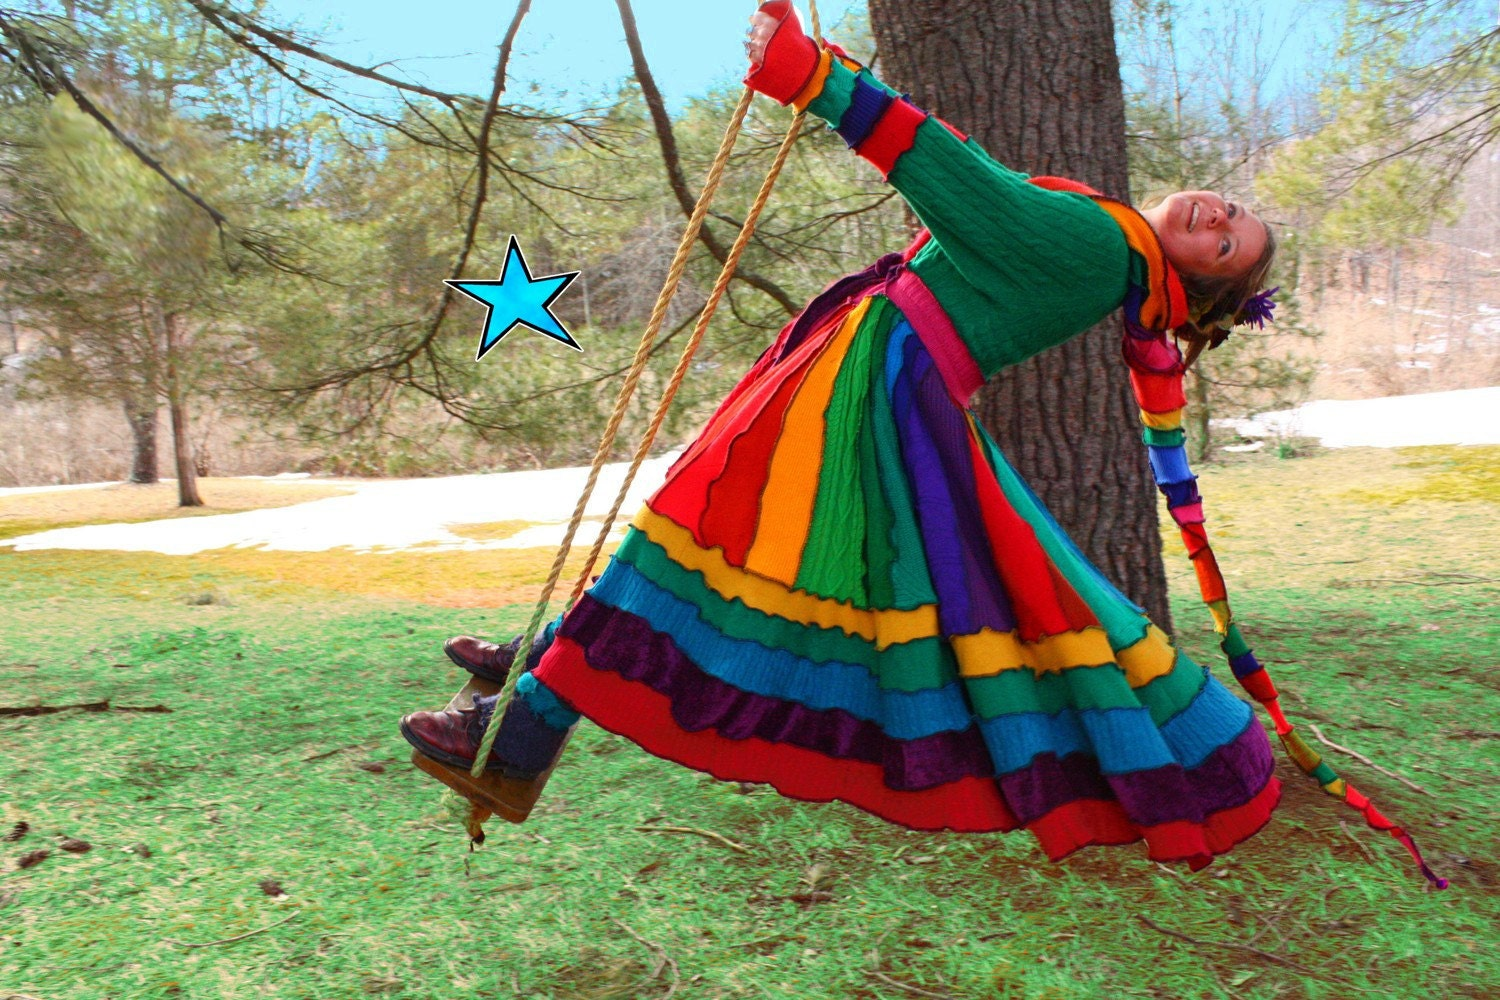 Katwise Dream Coat made from Upcycled Sweaters  - Recycled Elf couture -RESERVED FOR Deb -- MeDiUm - EXTRA LONG Green Rainbow spring traveling Dream Hoodie made from repurposed reconstructed jumpers